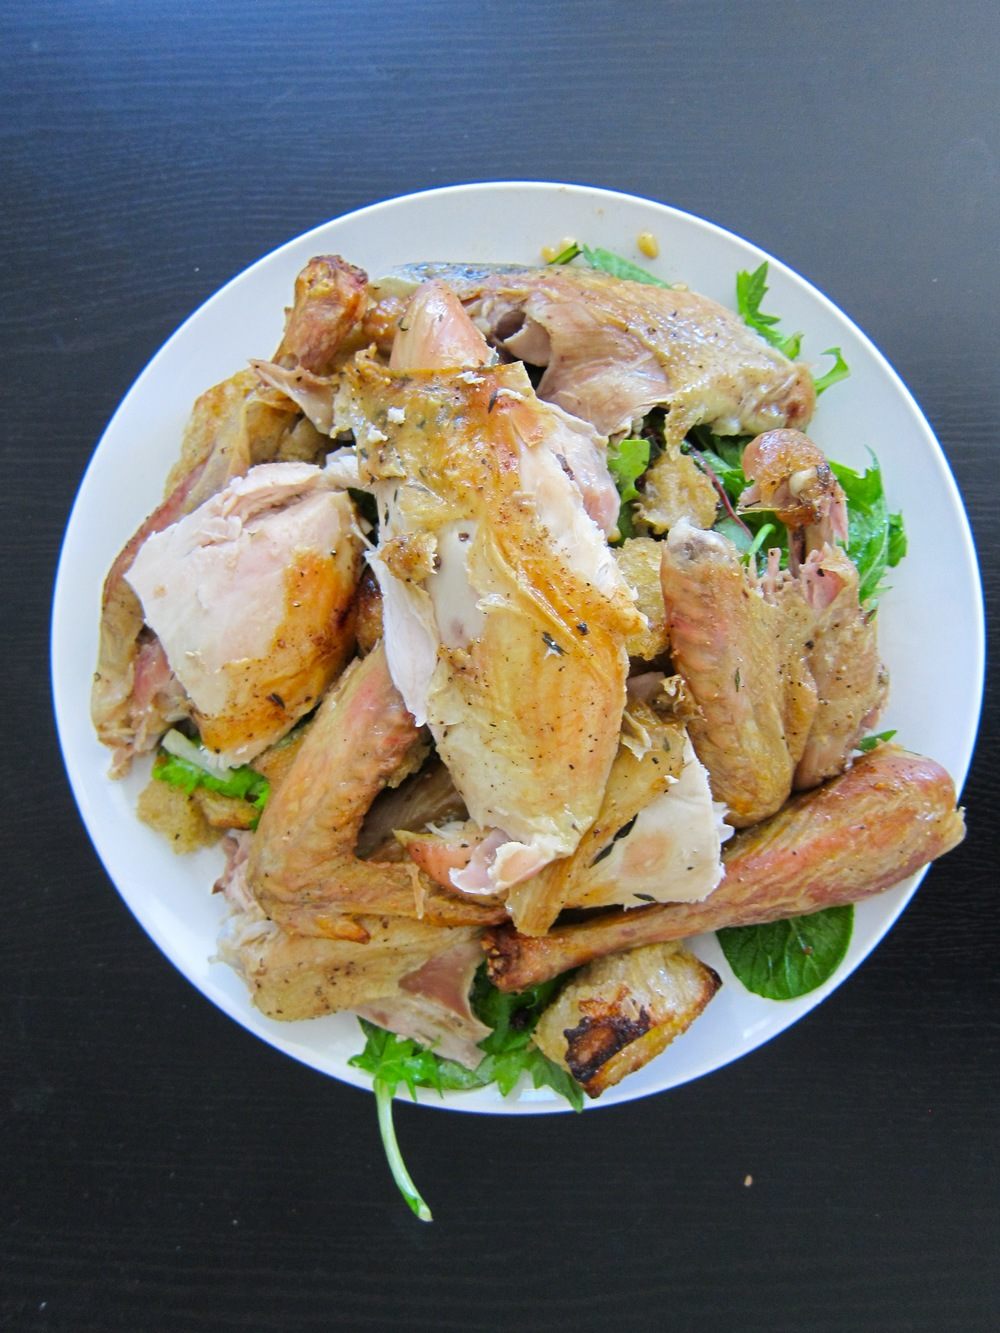 Zuni Cafe's Roast Chicken & Bread Salad